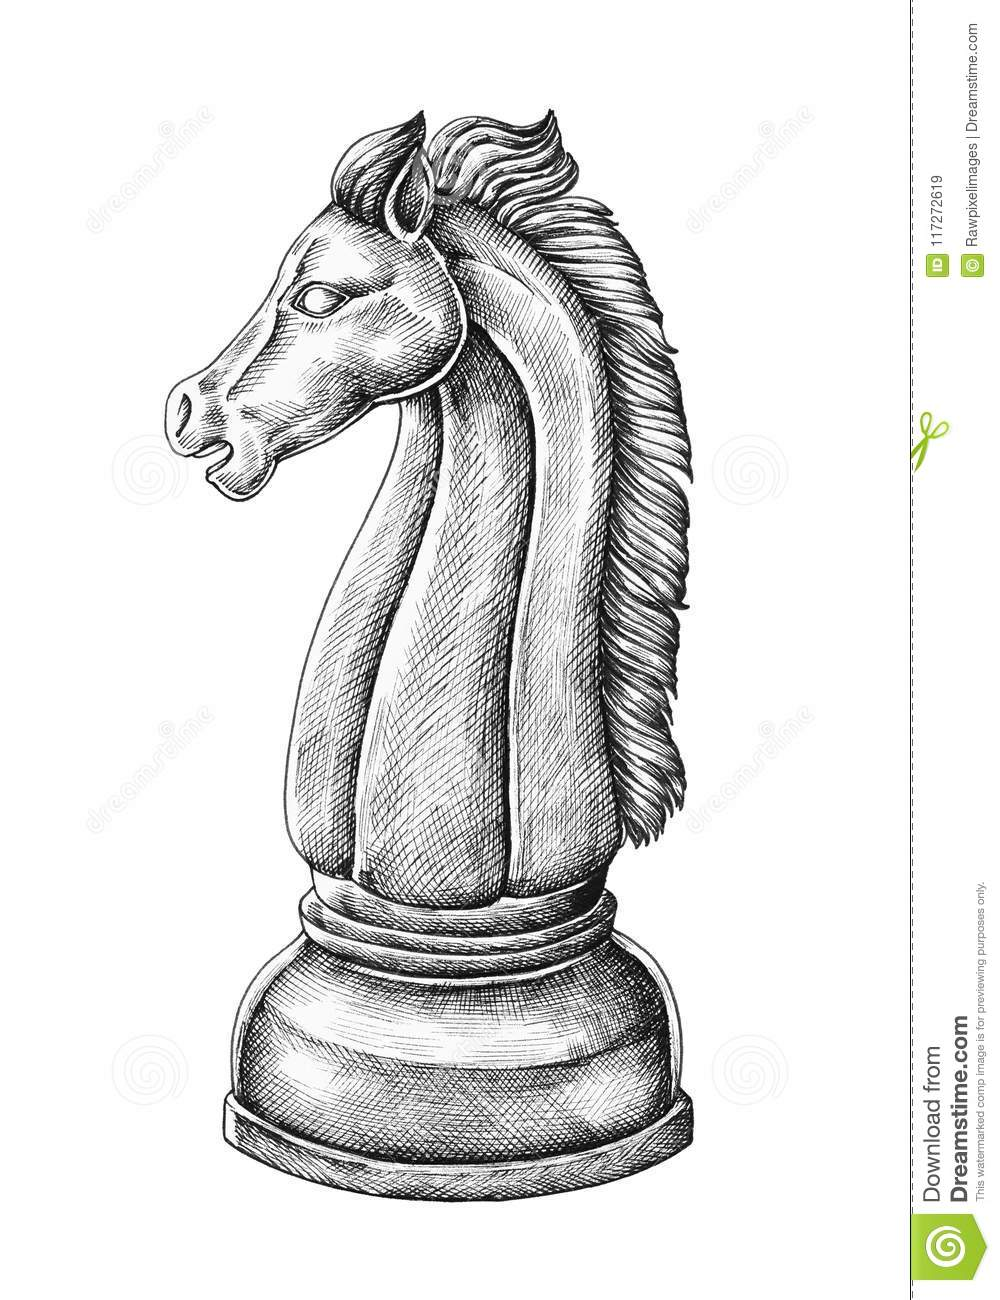 Illustration Of A Horse Chess Player Stock Illustration Illustration Of Celebration Diamond 117272619